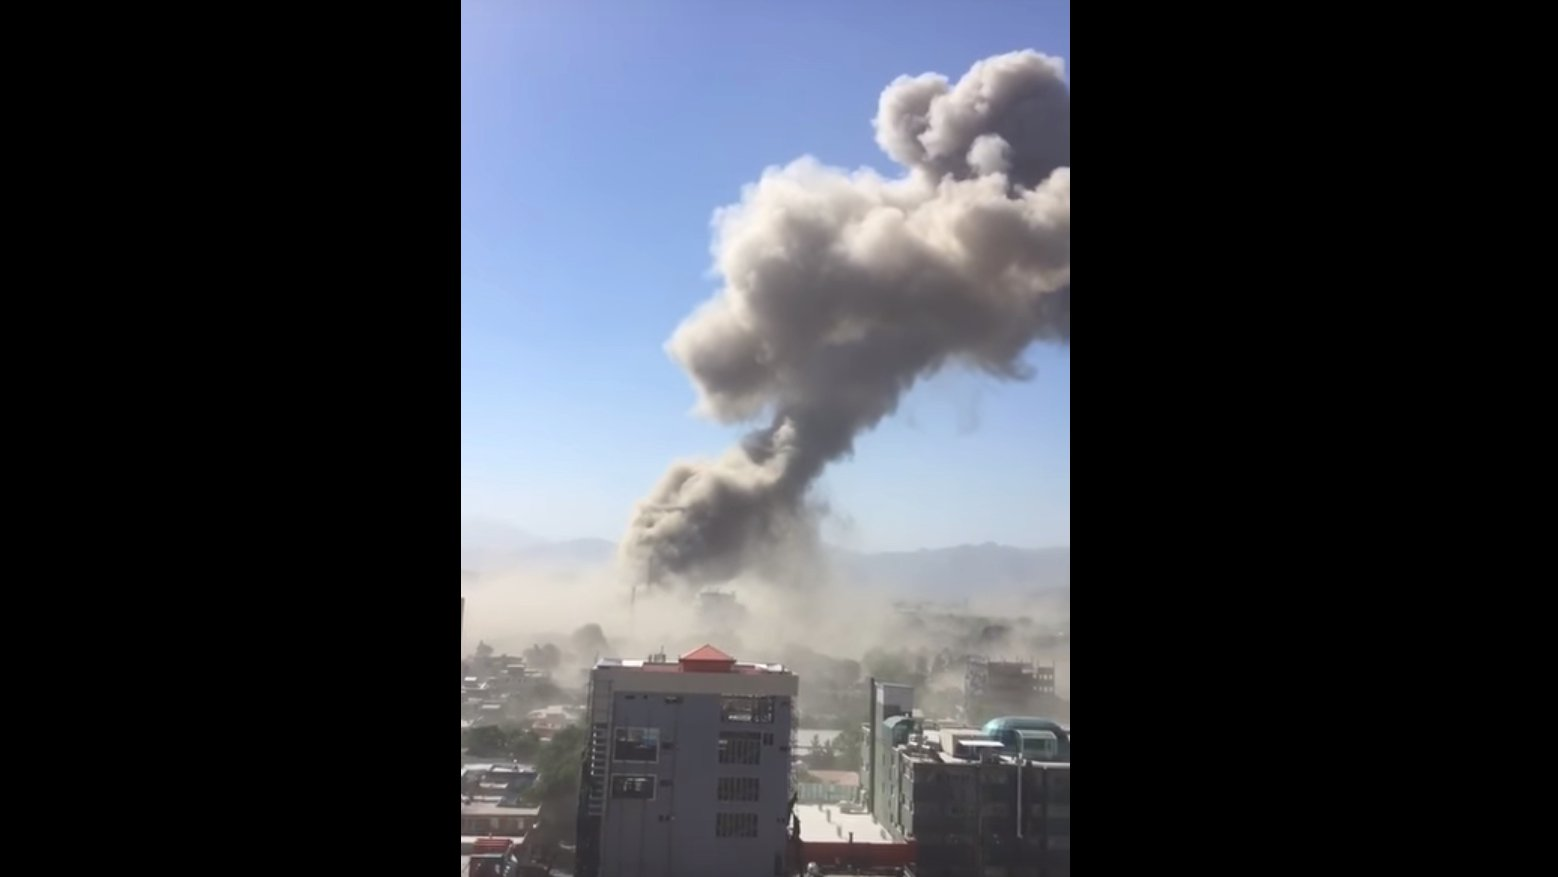 Anschlag in Kabul: Übe 60 Tote bei Bombenexplosion